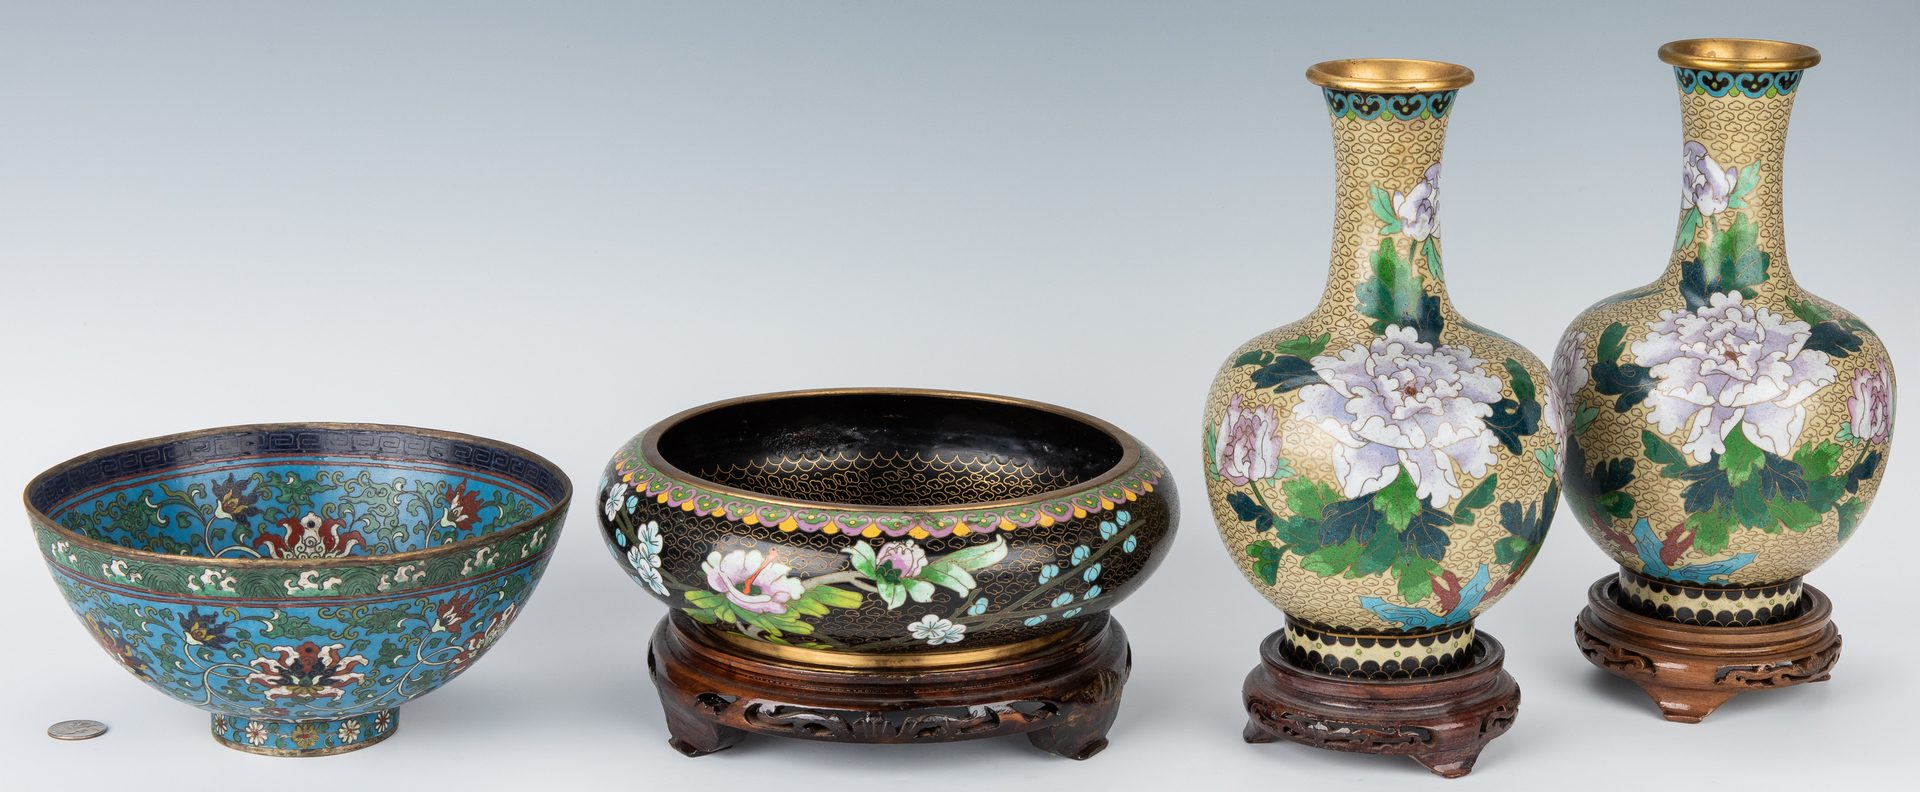 Lot 12: 5 Chinese Decorative Items